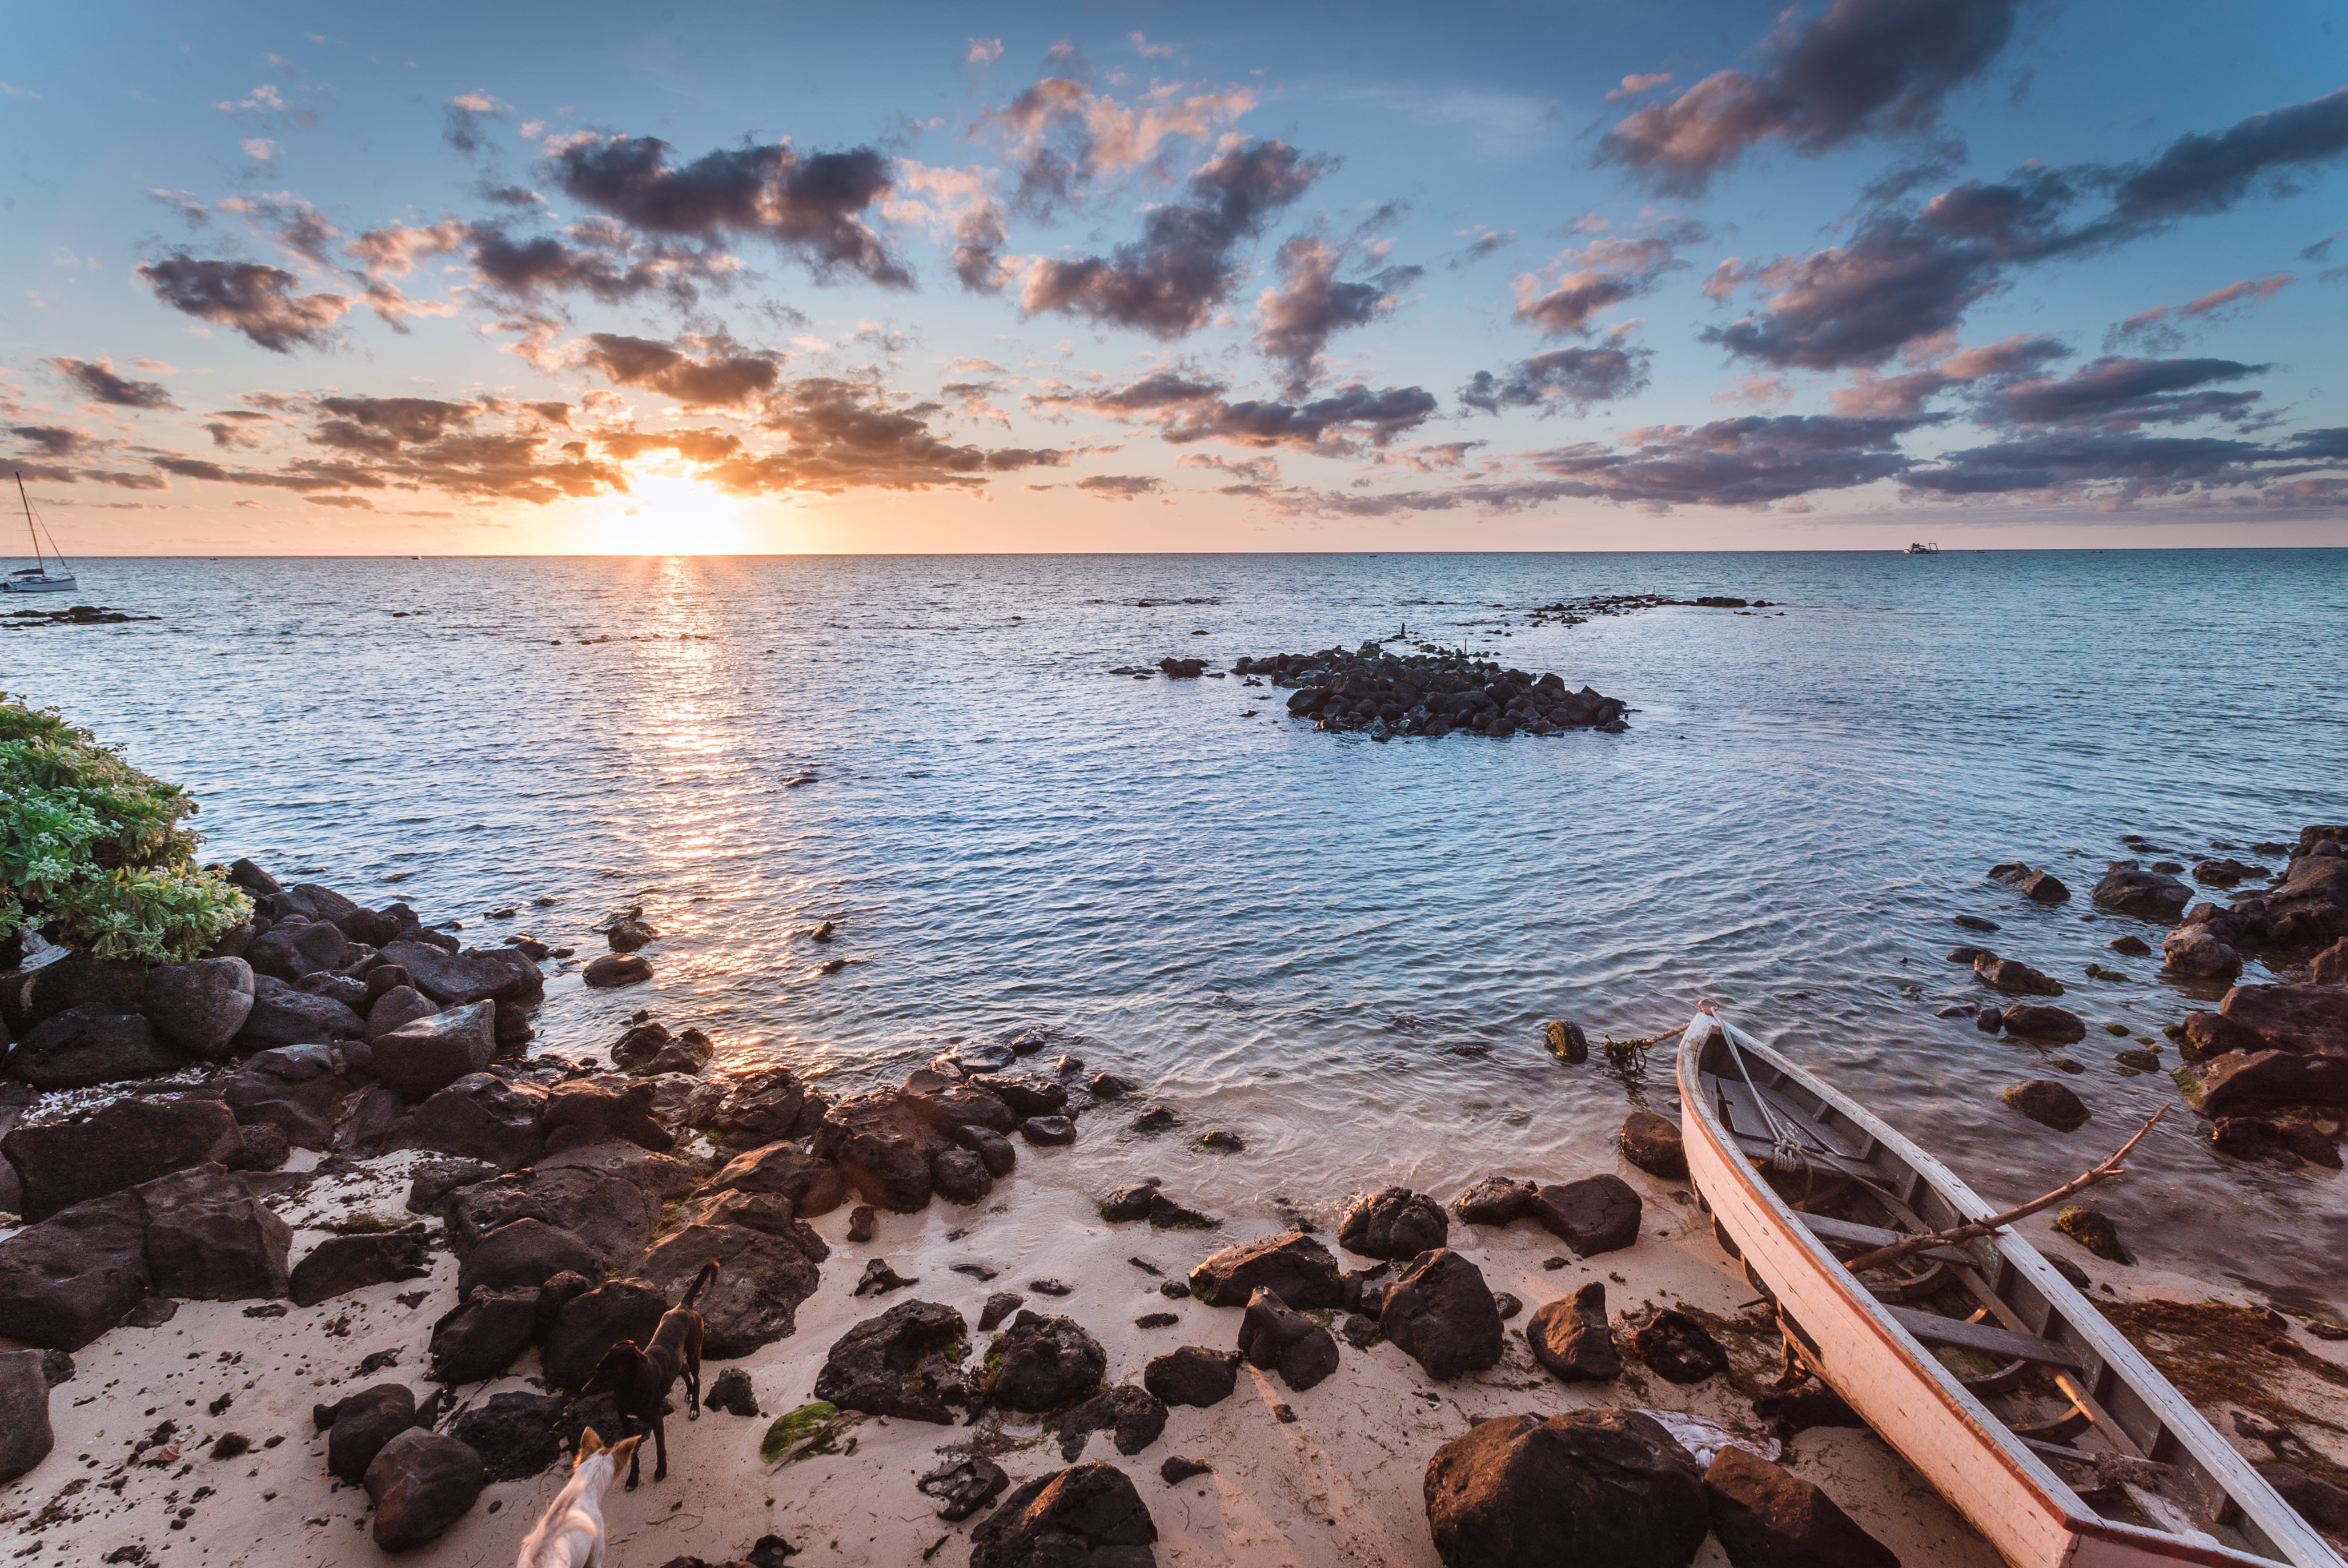 photo of white wooden boat on shoreline near rocks during sunrise